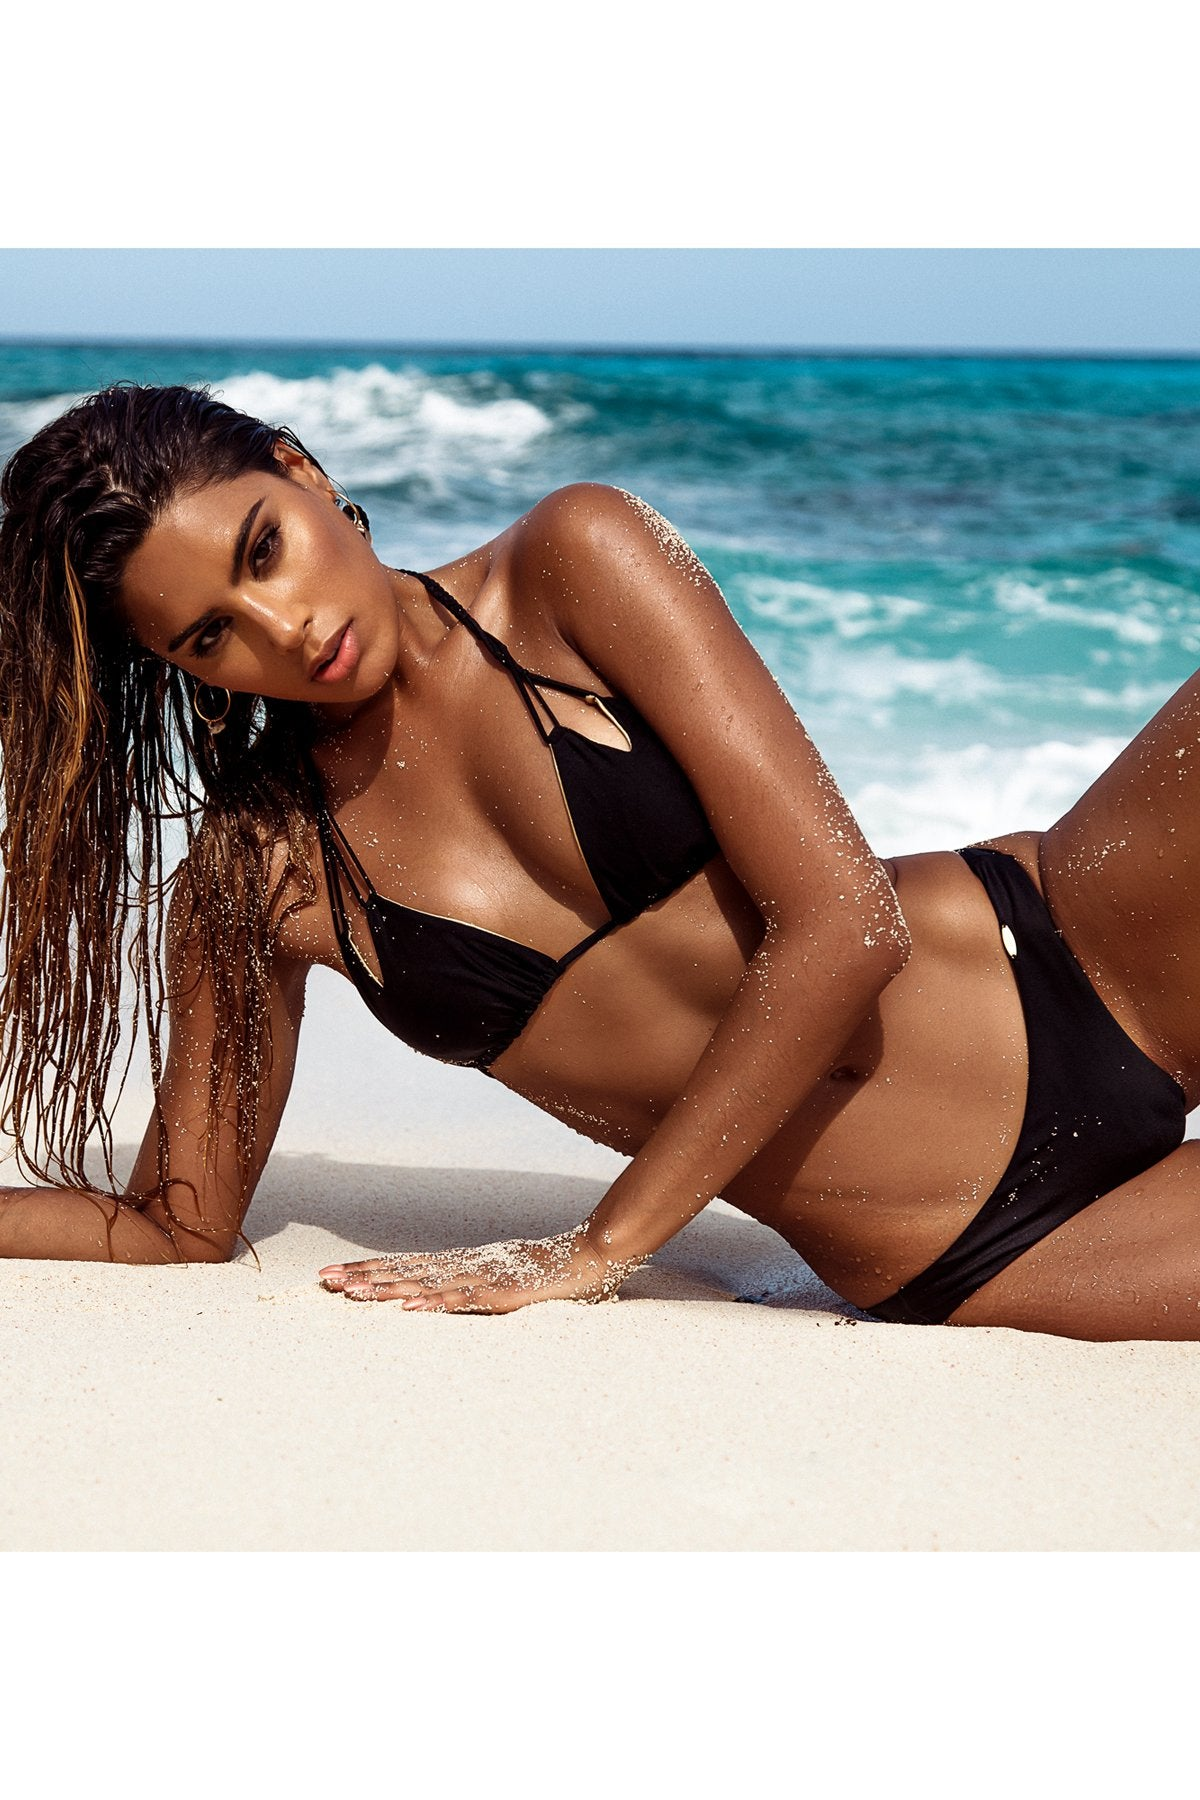 COSITA BUENA - Zig Zag Knotted Cut Out Triangle Top & Seamless Wavey Ruched Back Bottom • Black Campaign